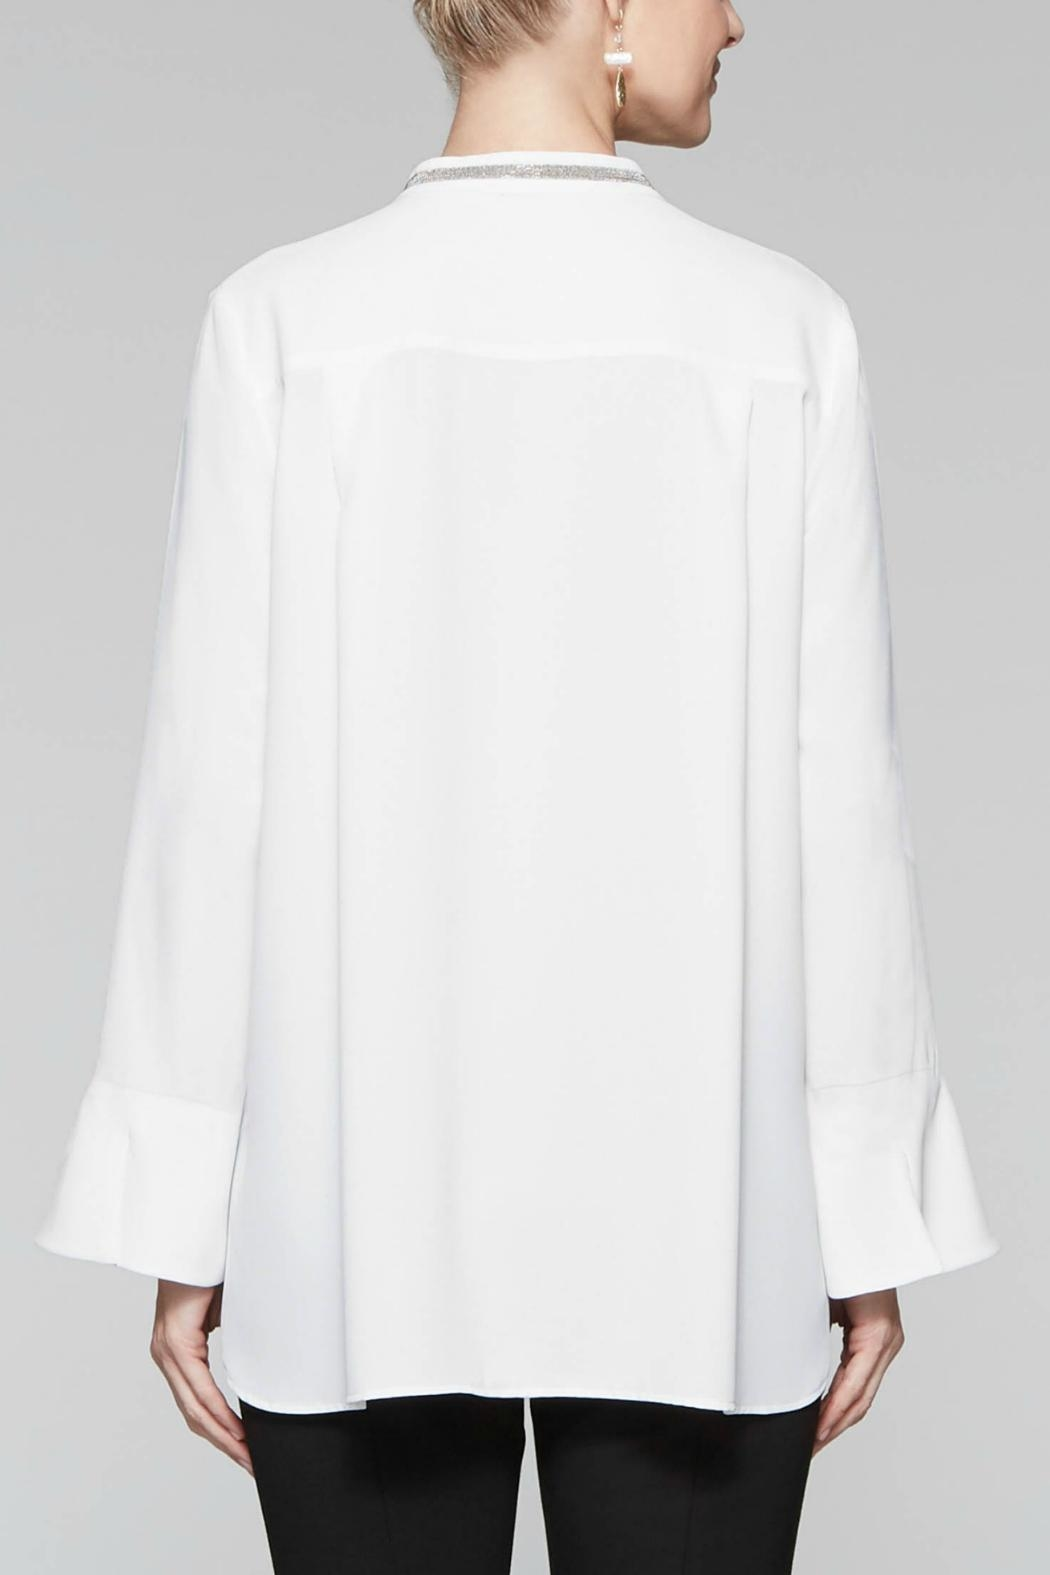 Misook Sparkle Trim Blouse - Back Cropped Image